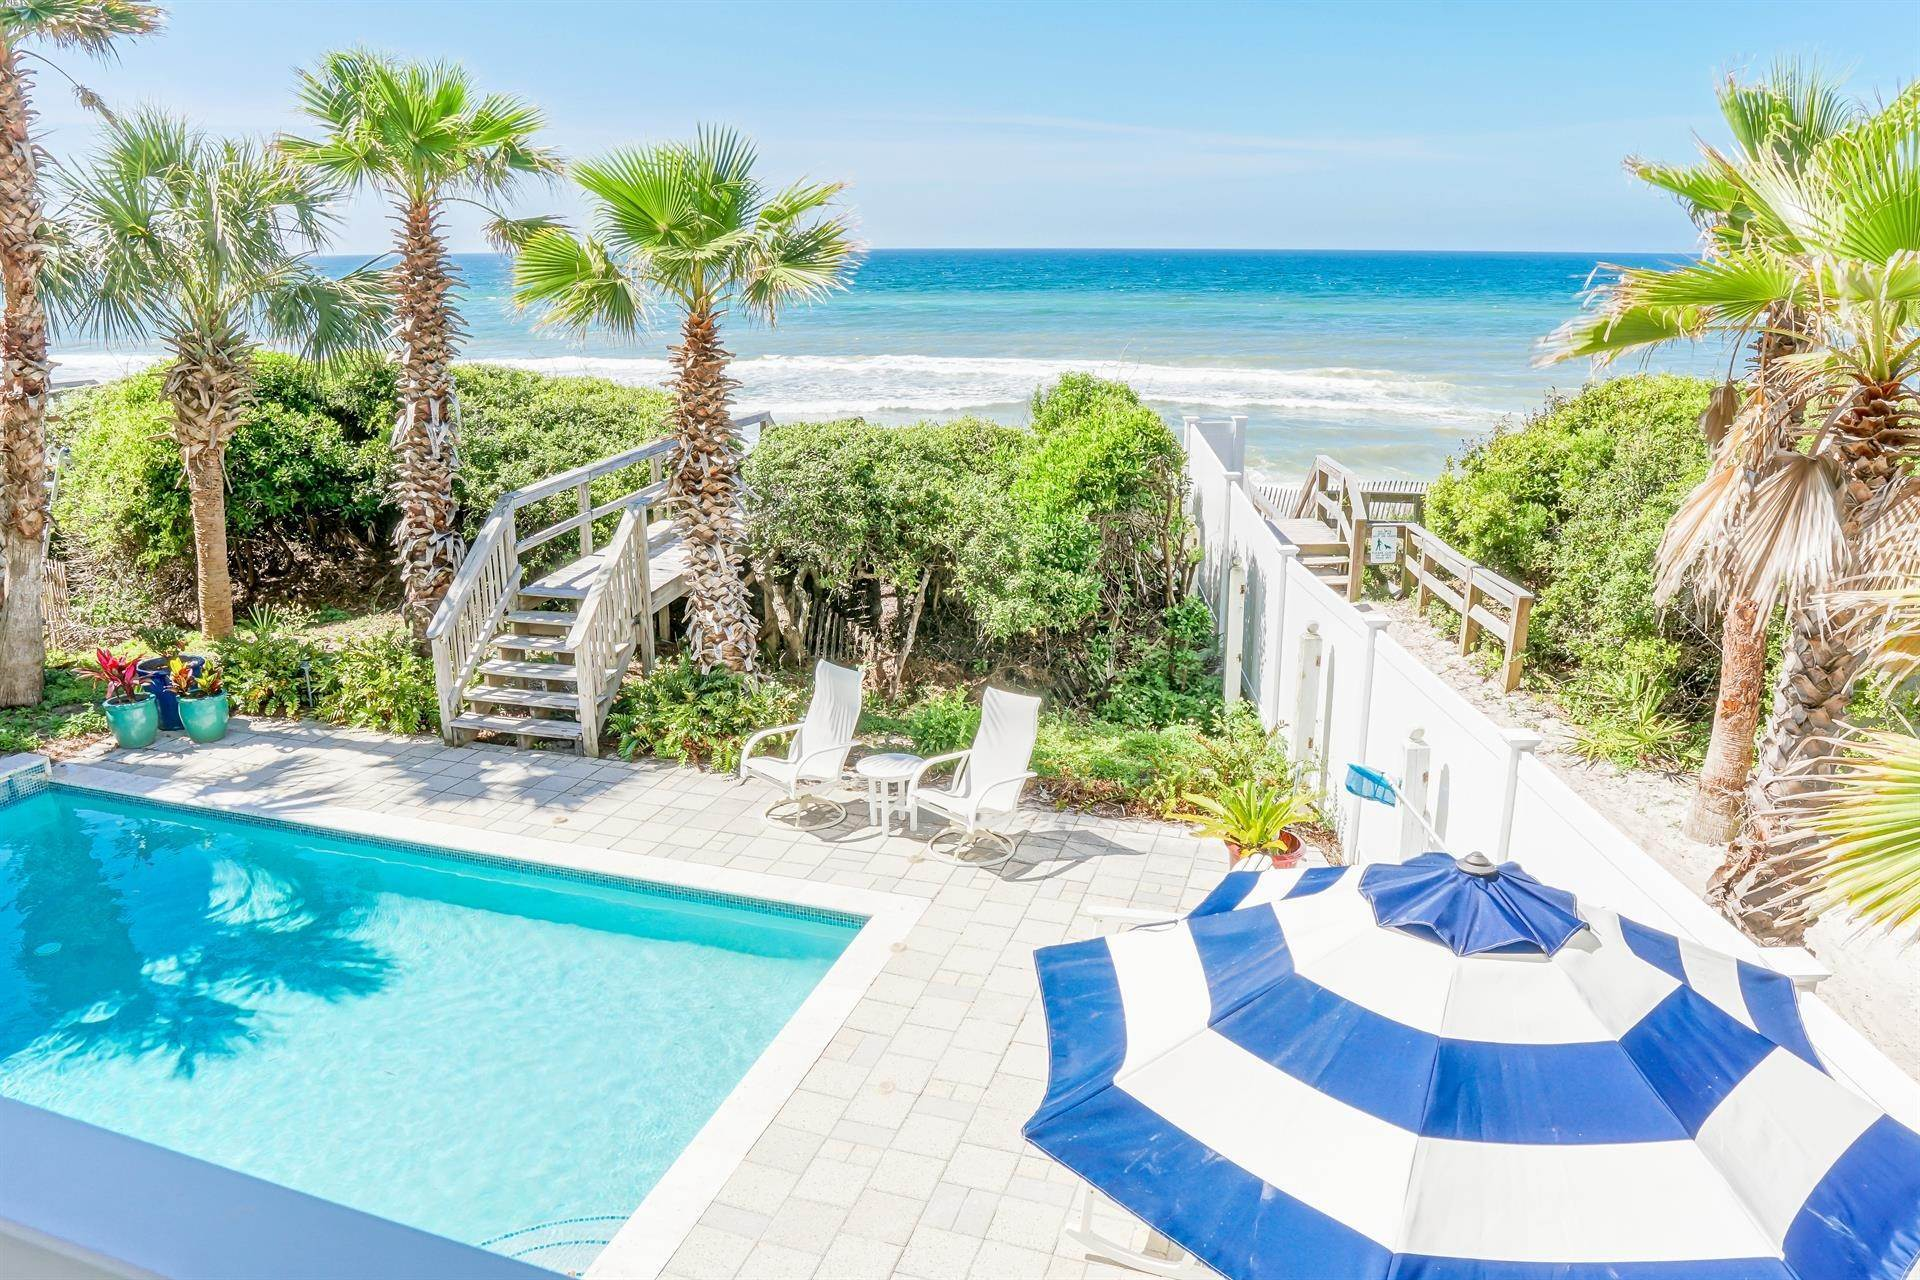 12. Single Family Home 为 出租 在 Oceanfront on Scenic 30A, Florida 8870 E. County Hwy 30A, Seacrest, FL 32461 西克雷斯特, 佛罗里达州,32461 美国